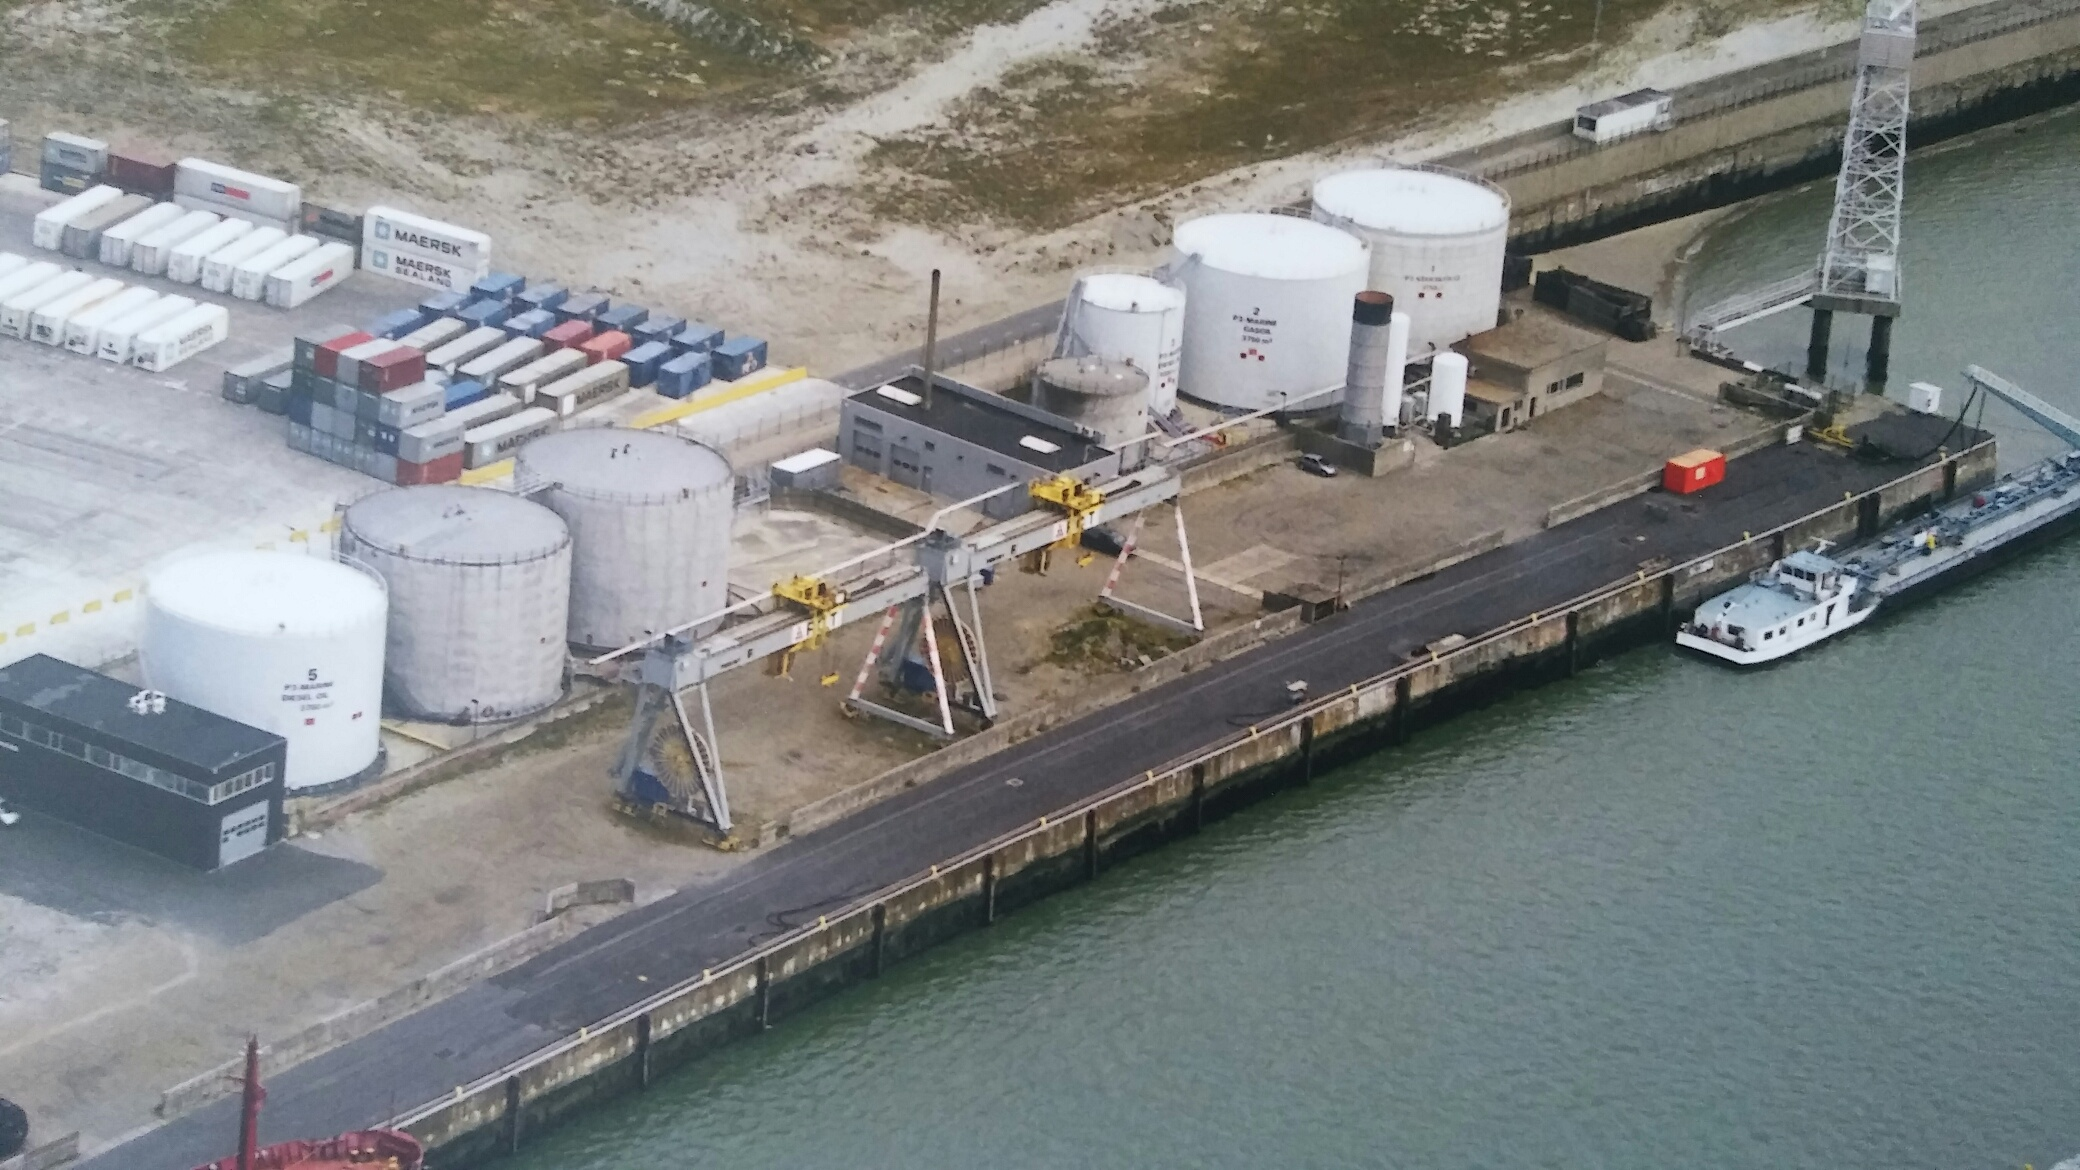 THE PRAX GROUP ACQUIRES OIL TERMINAL IN THE PORT OF ZEEBRUGGE